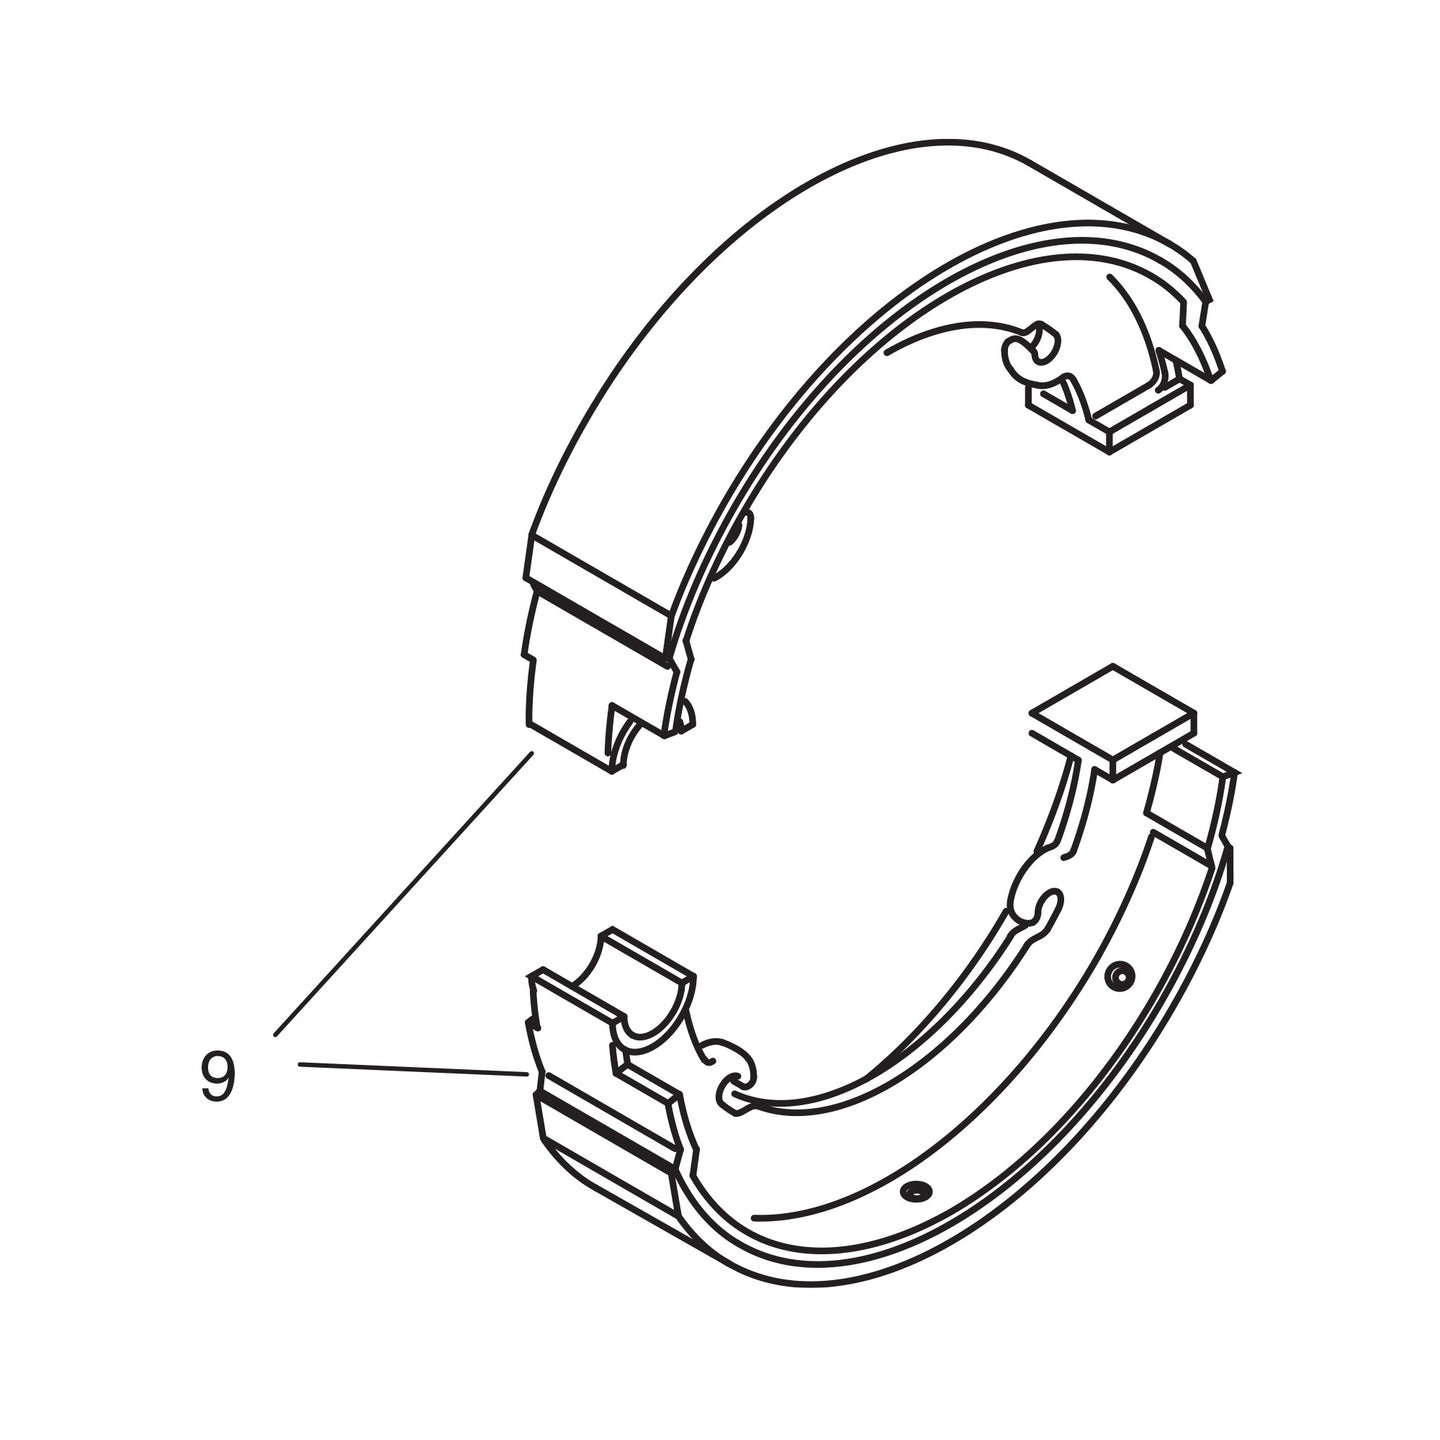 Relined Rear Brake Shoes - 1944-53 Models